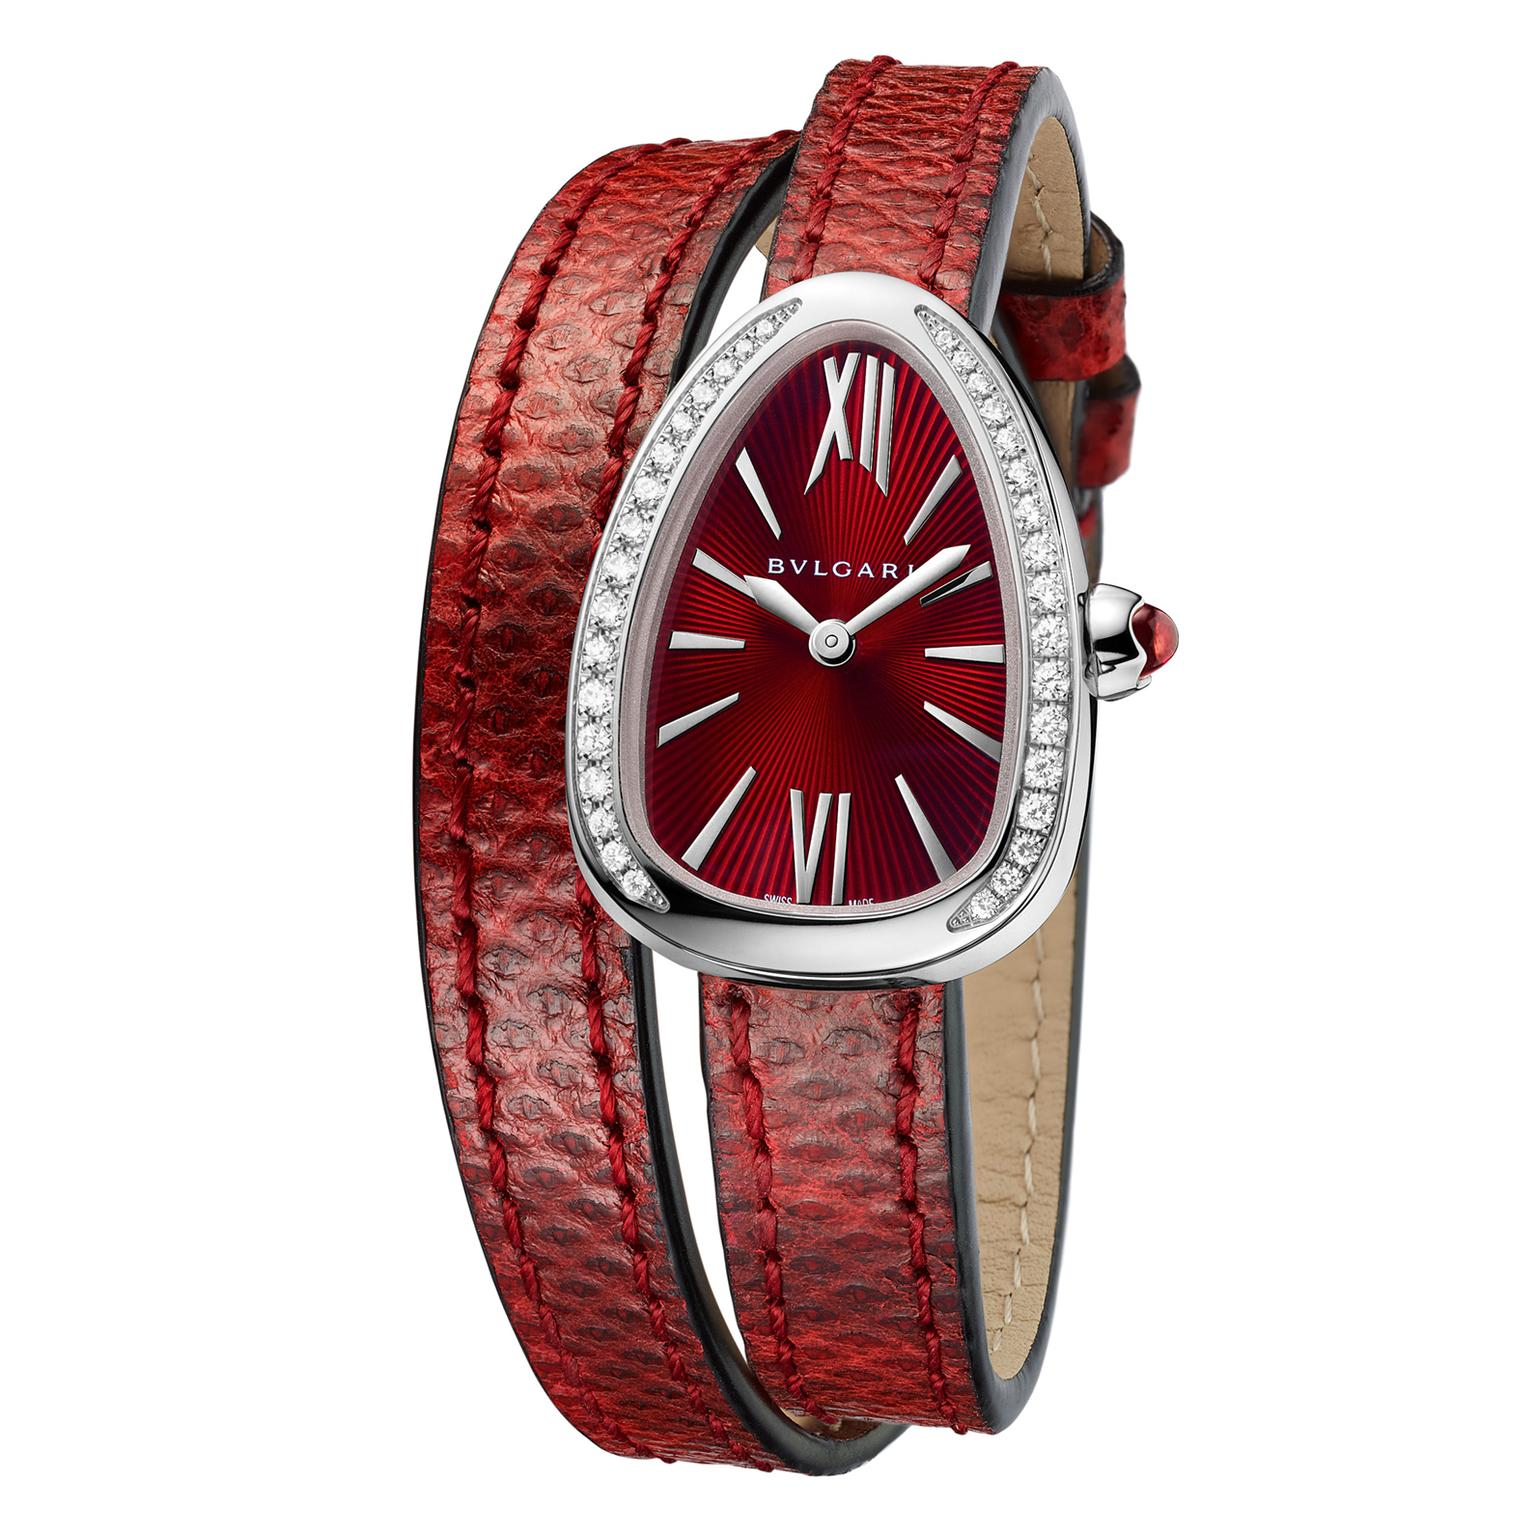 Bulgari Serpenti watch in steel with diamonds and red dial